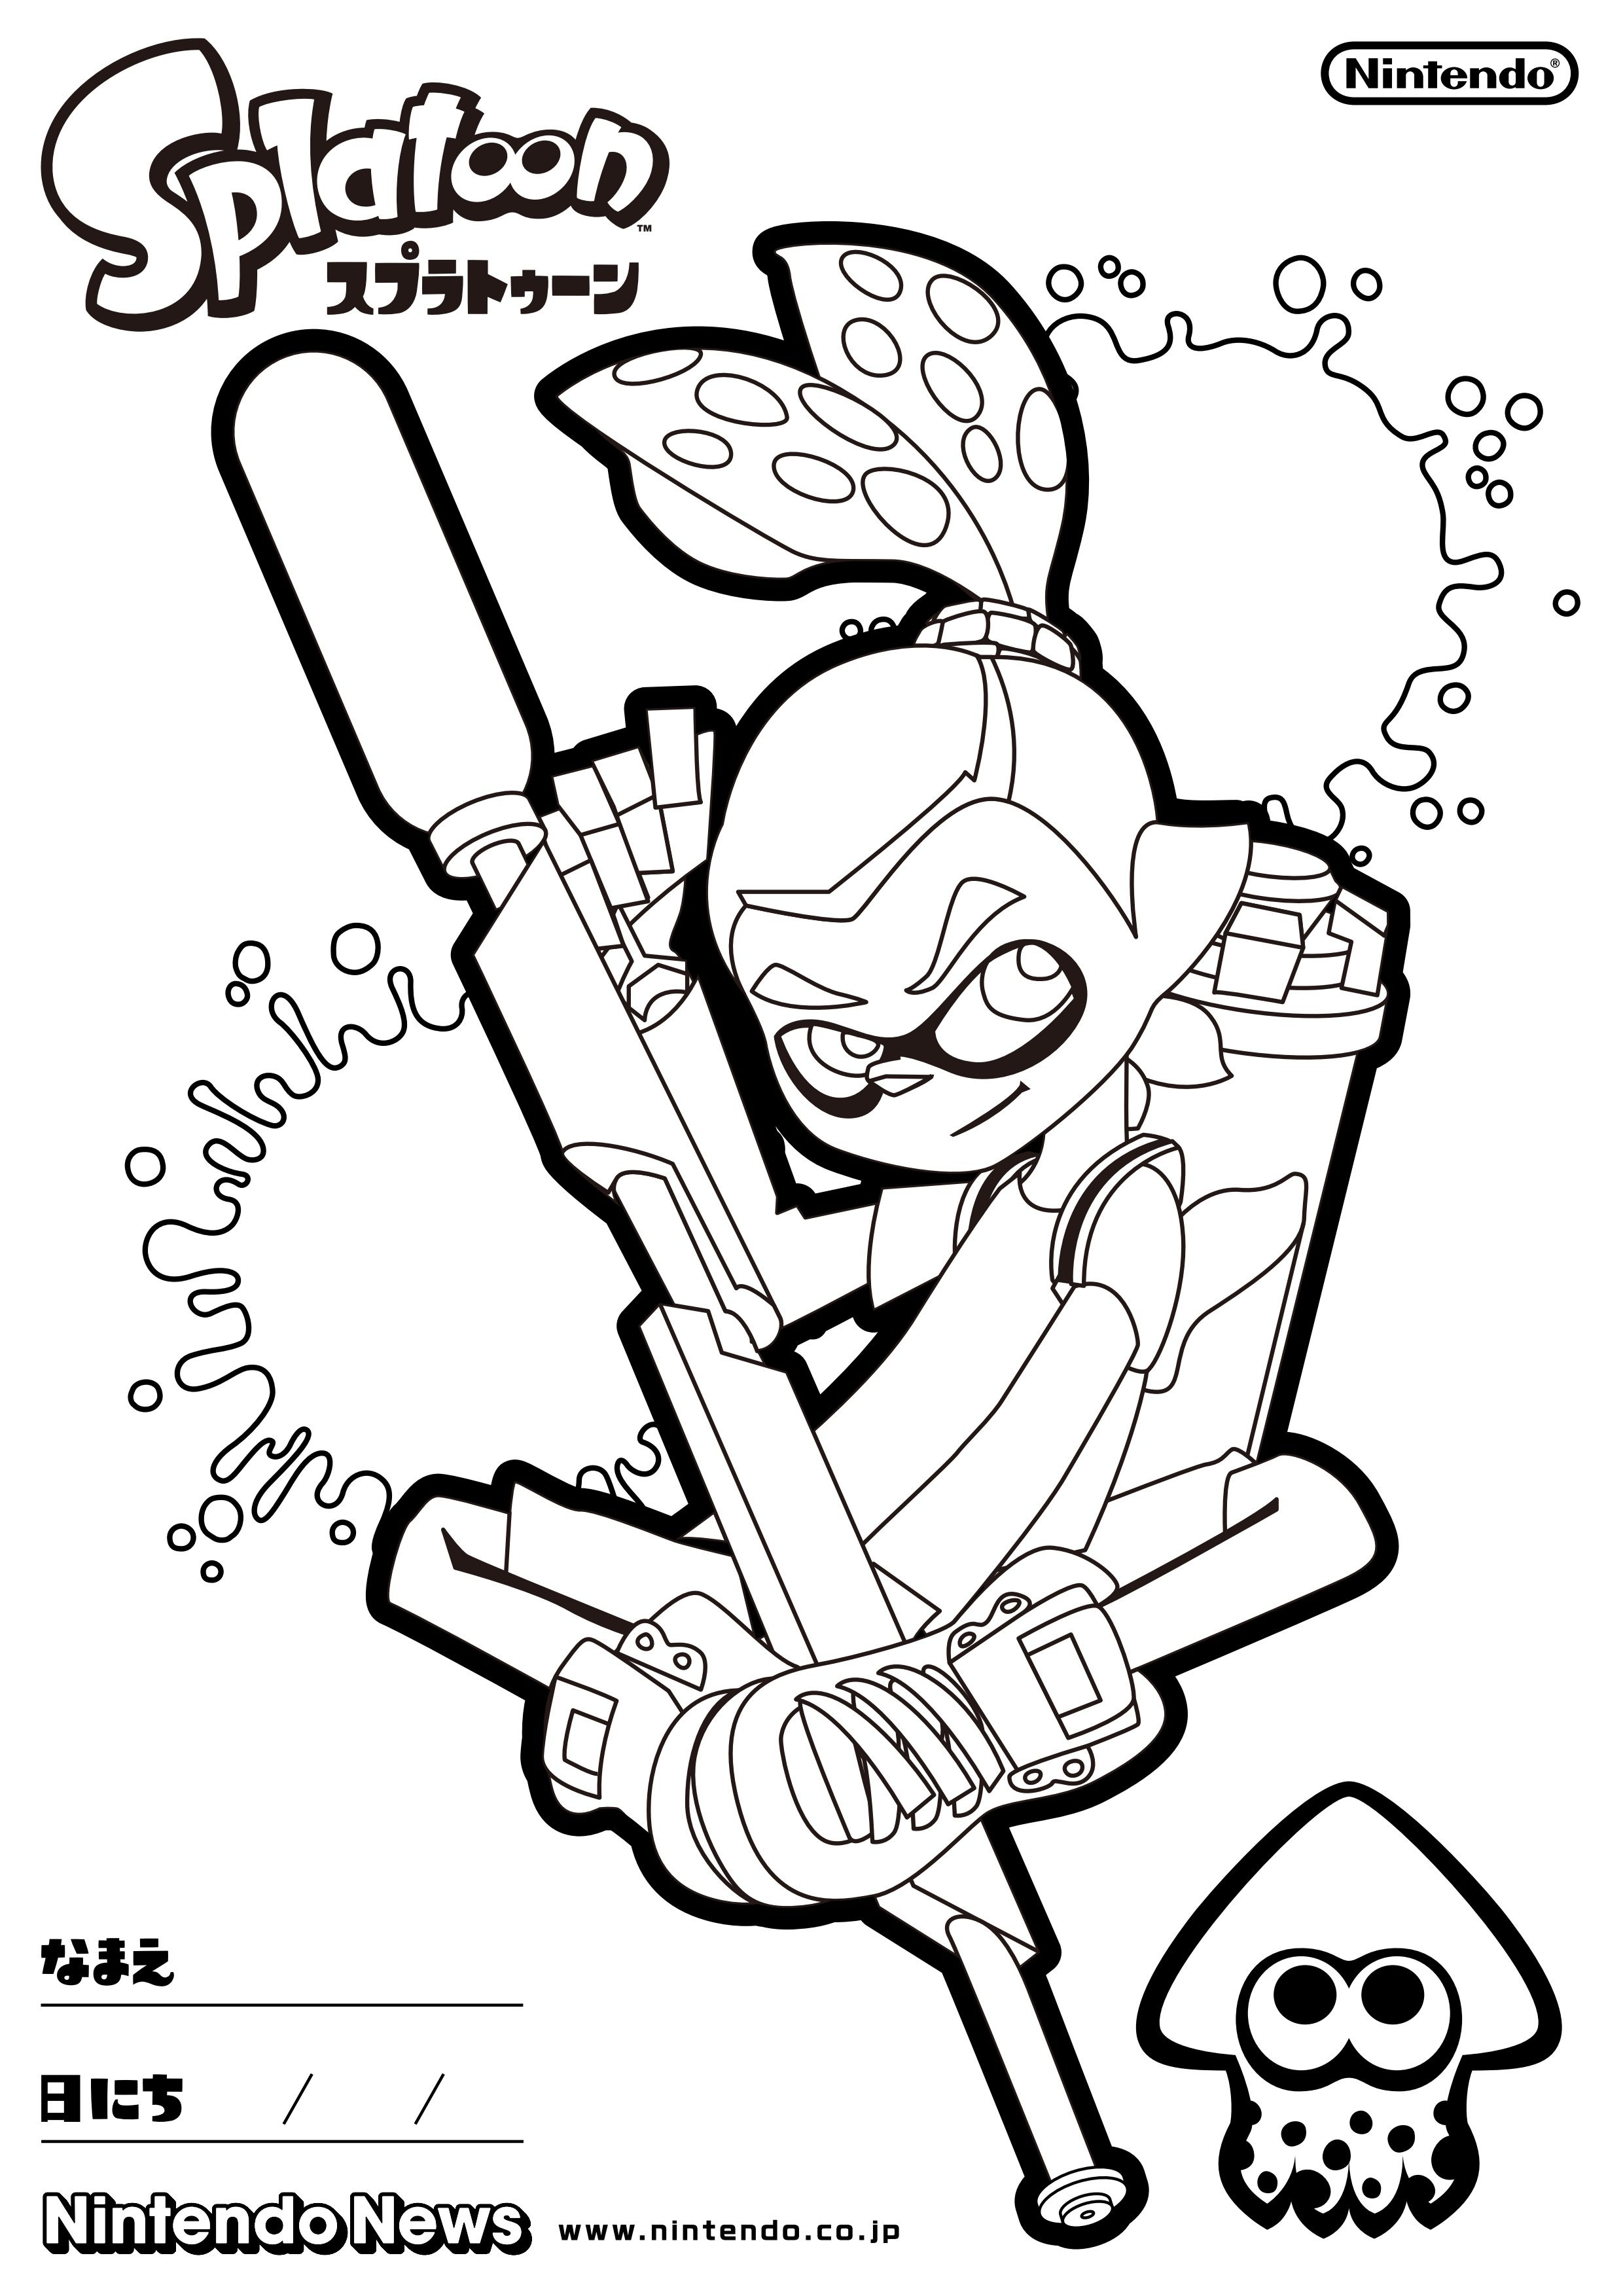 Splatoon Octo Sniper Coloring Pages